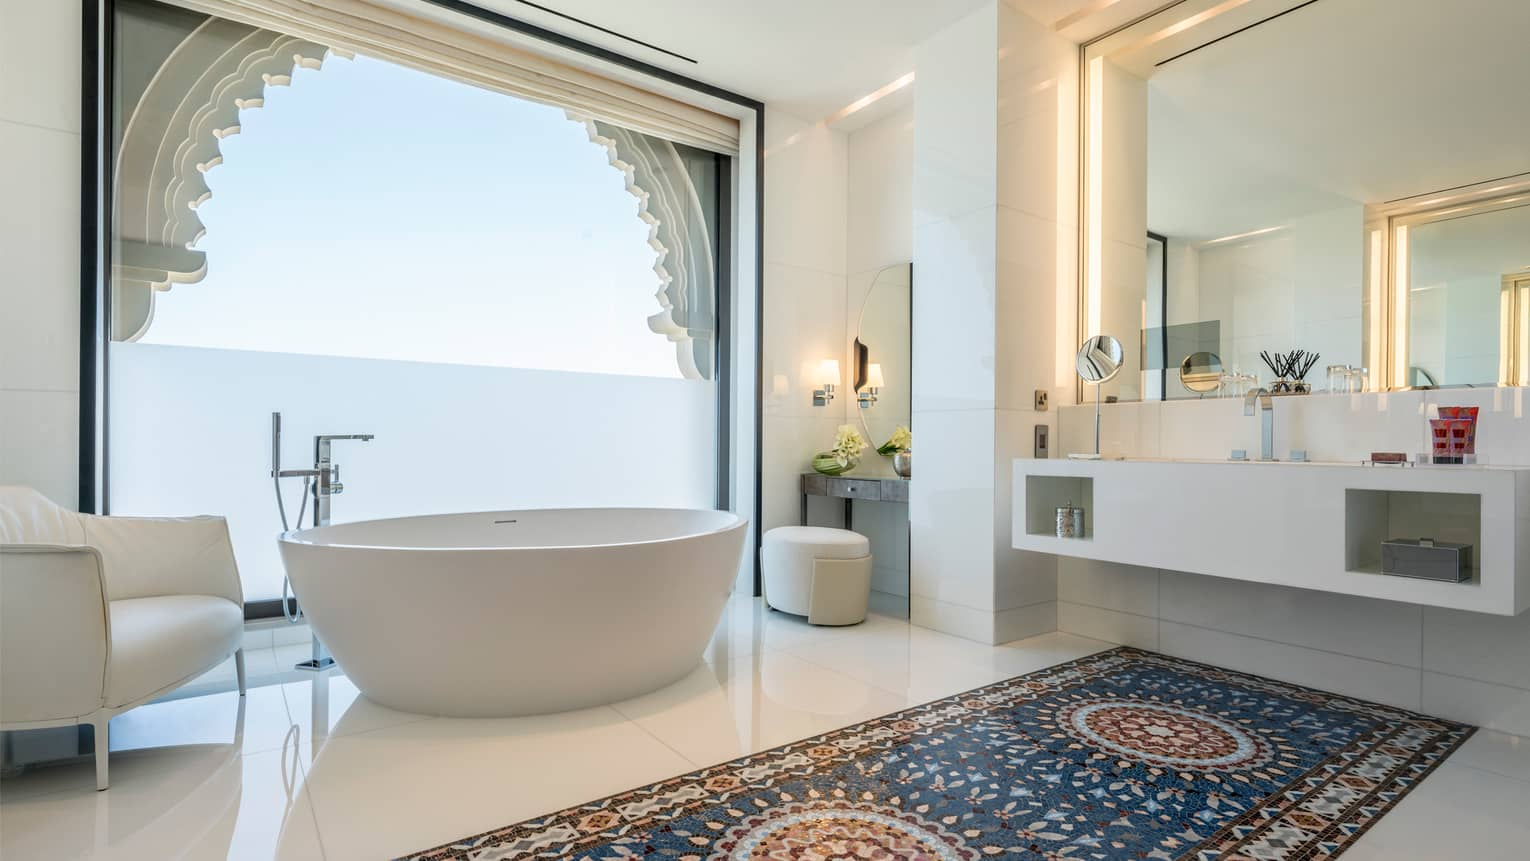 Bathroom with white spa tub and armchair in front of tall window and vanity, white floors with Arabic-style tiles